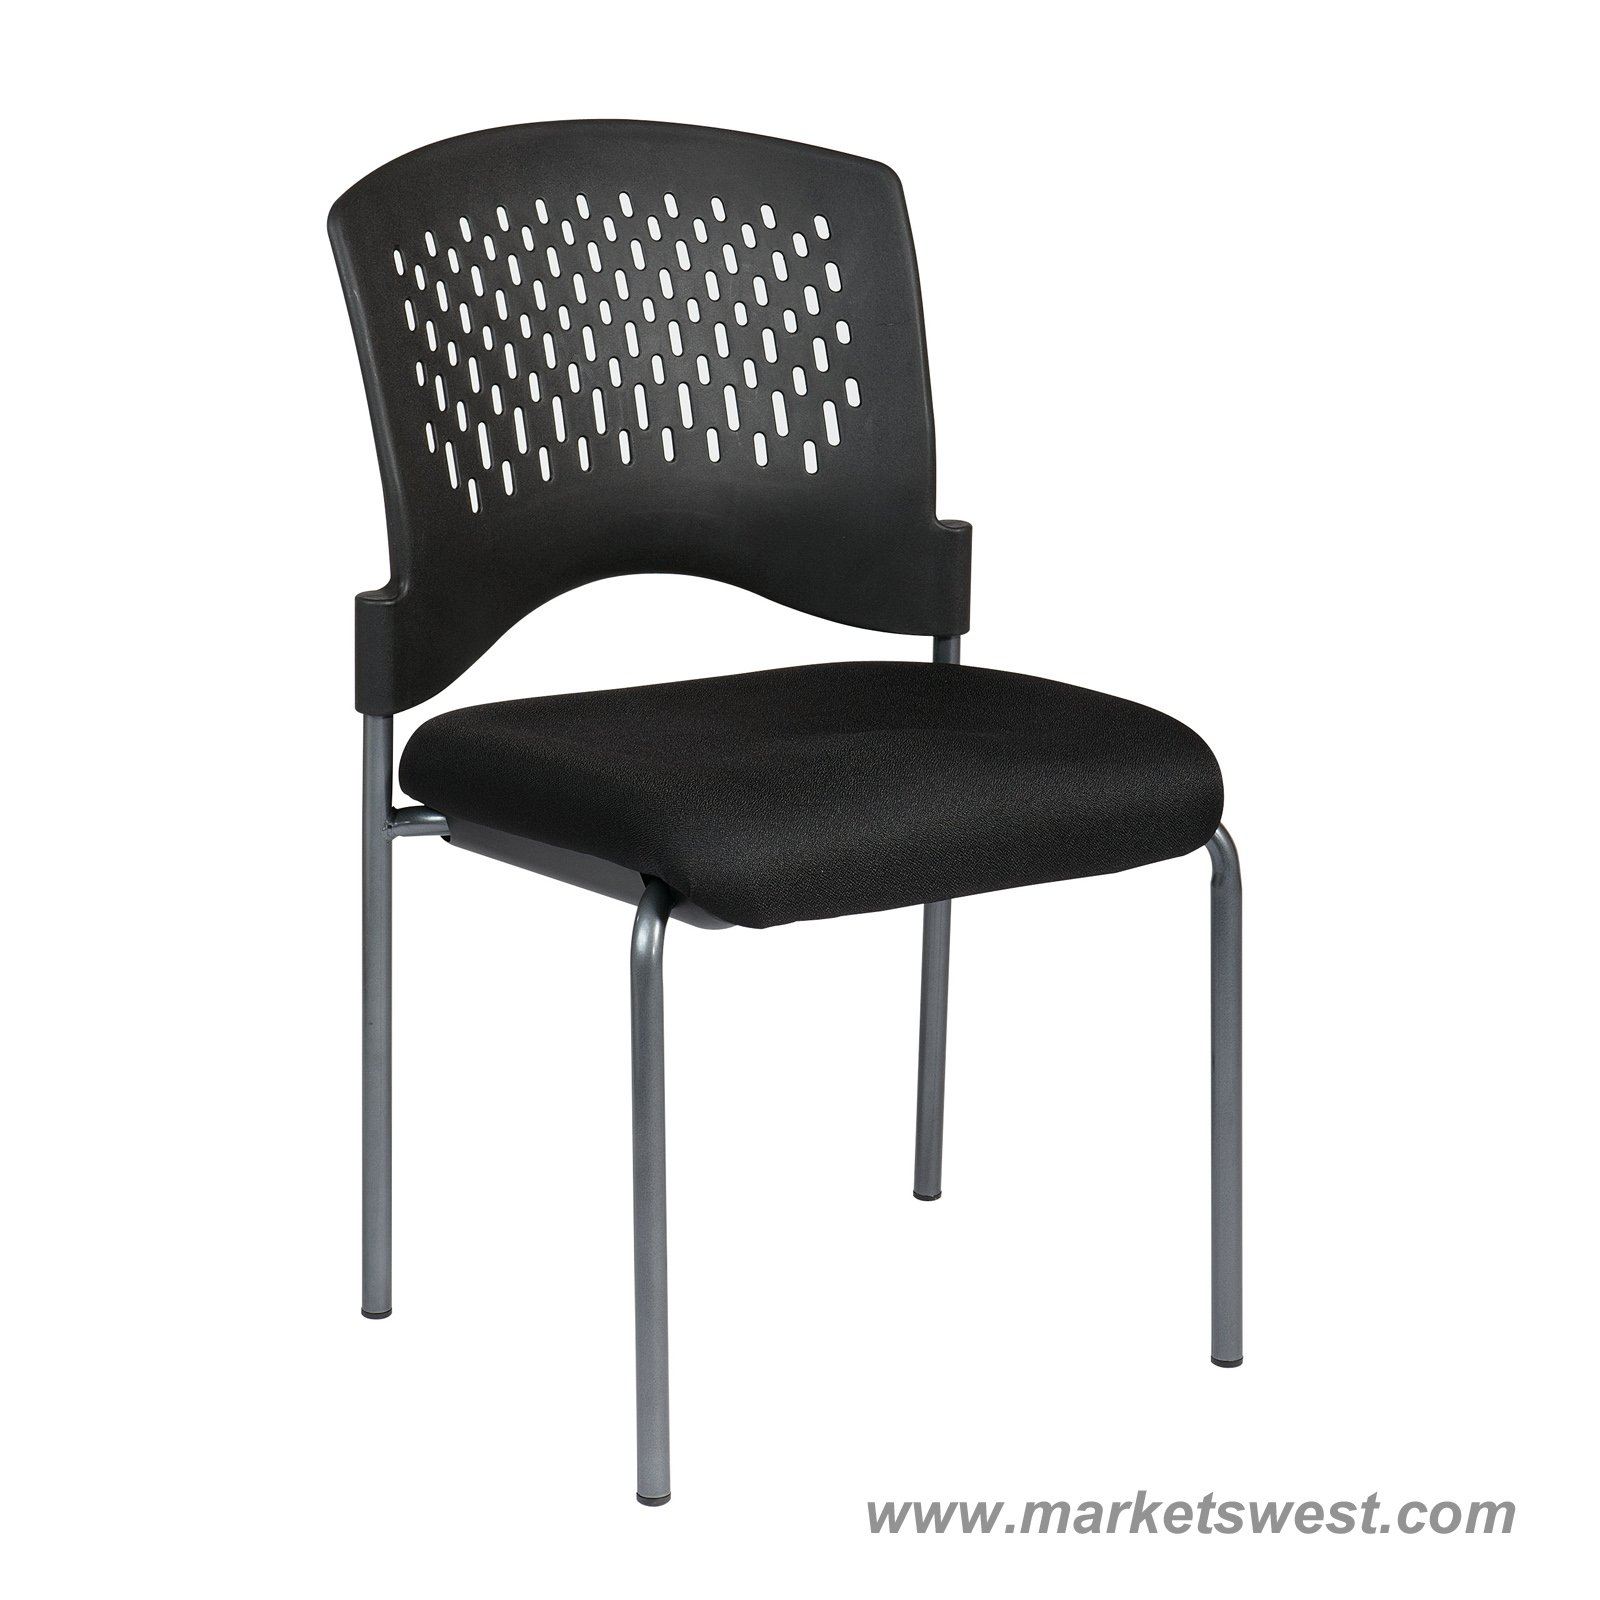 Pro Line II Titanium Finish Black Armless Visitors Chair With Ventilated Plastic  Wrap Around Back